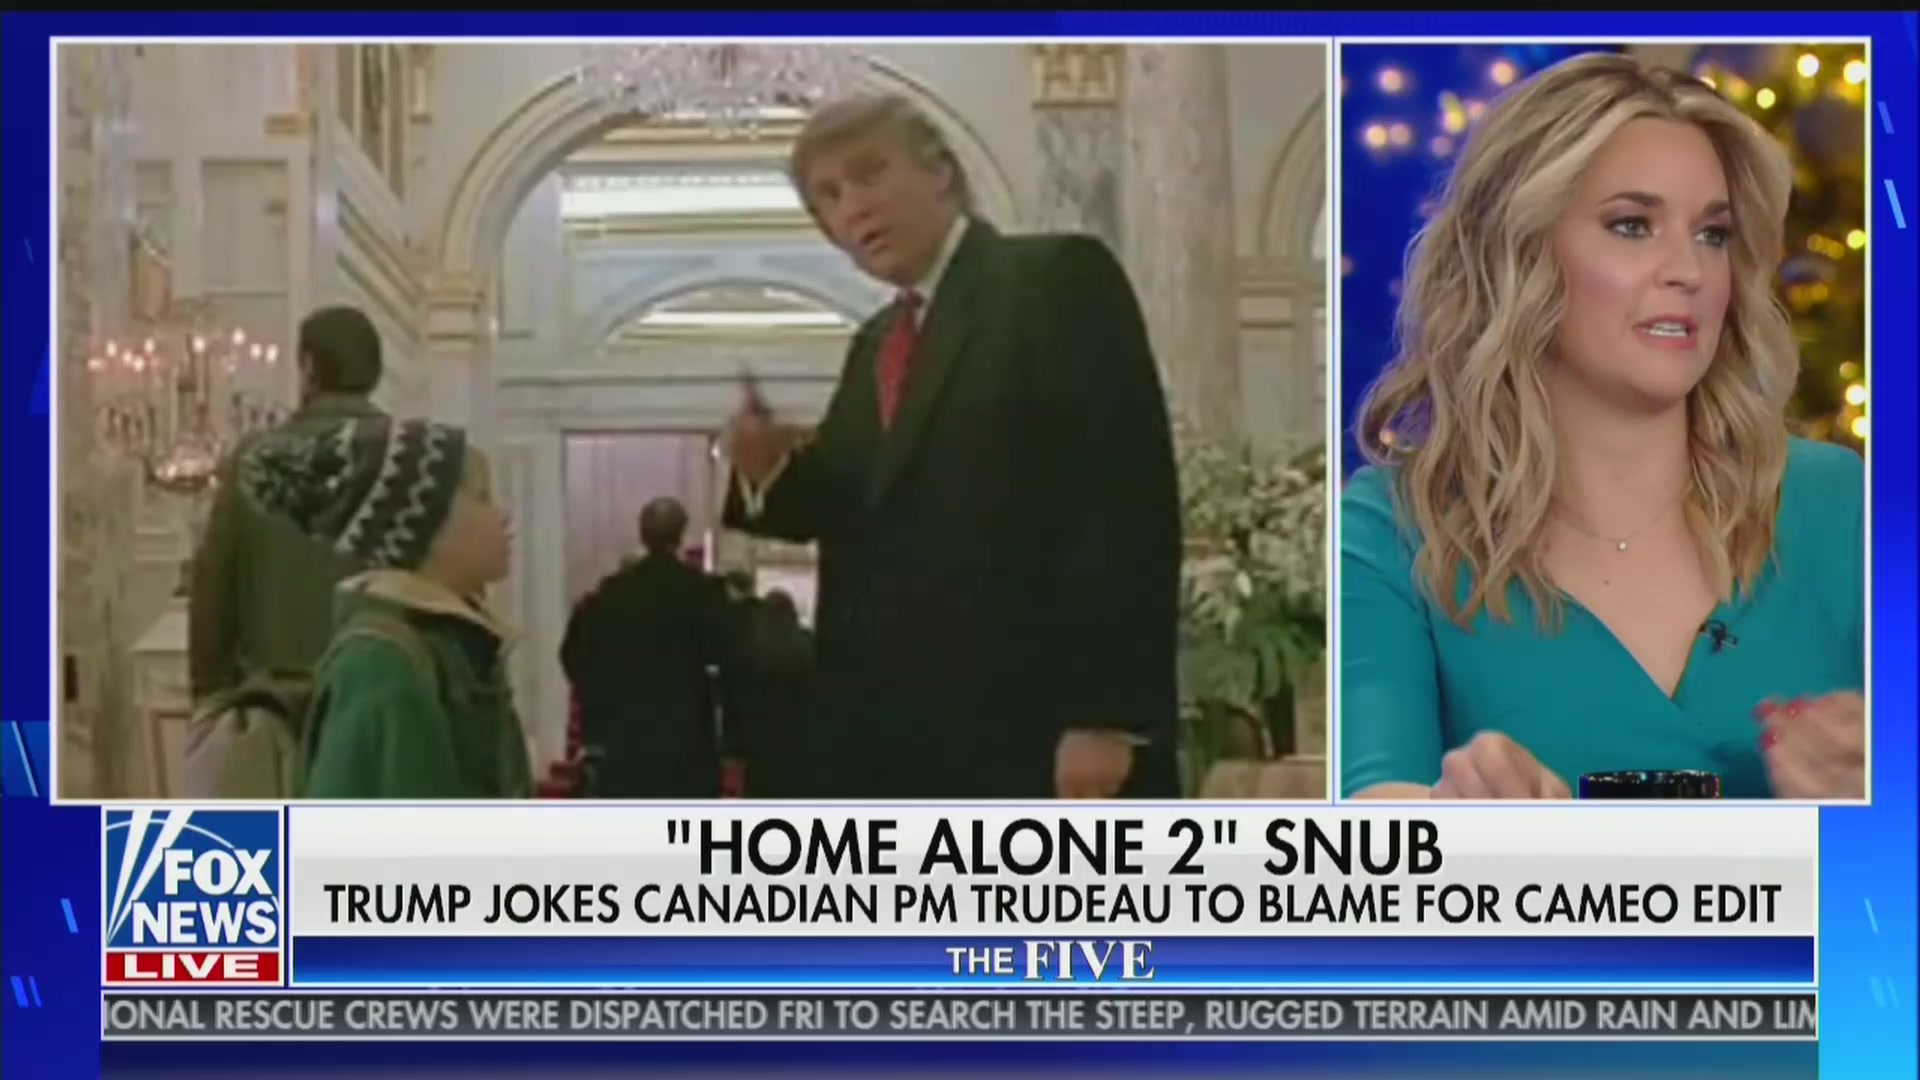 Fox's Katie Pavlich Issues Correction: 'I Apologize' for Calling 'Home Alone' Edit 'Censorship'